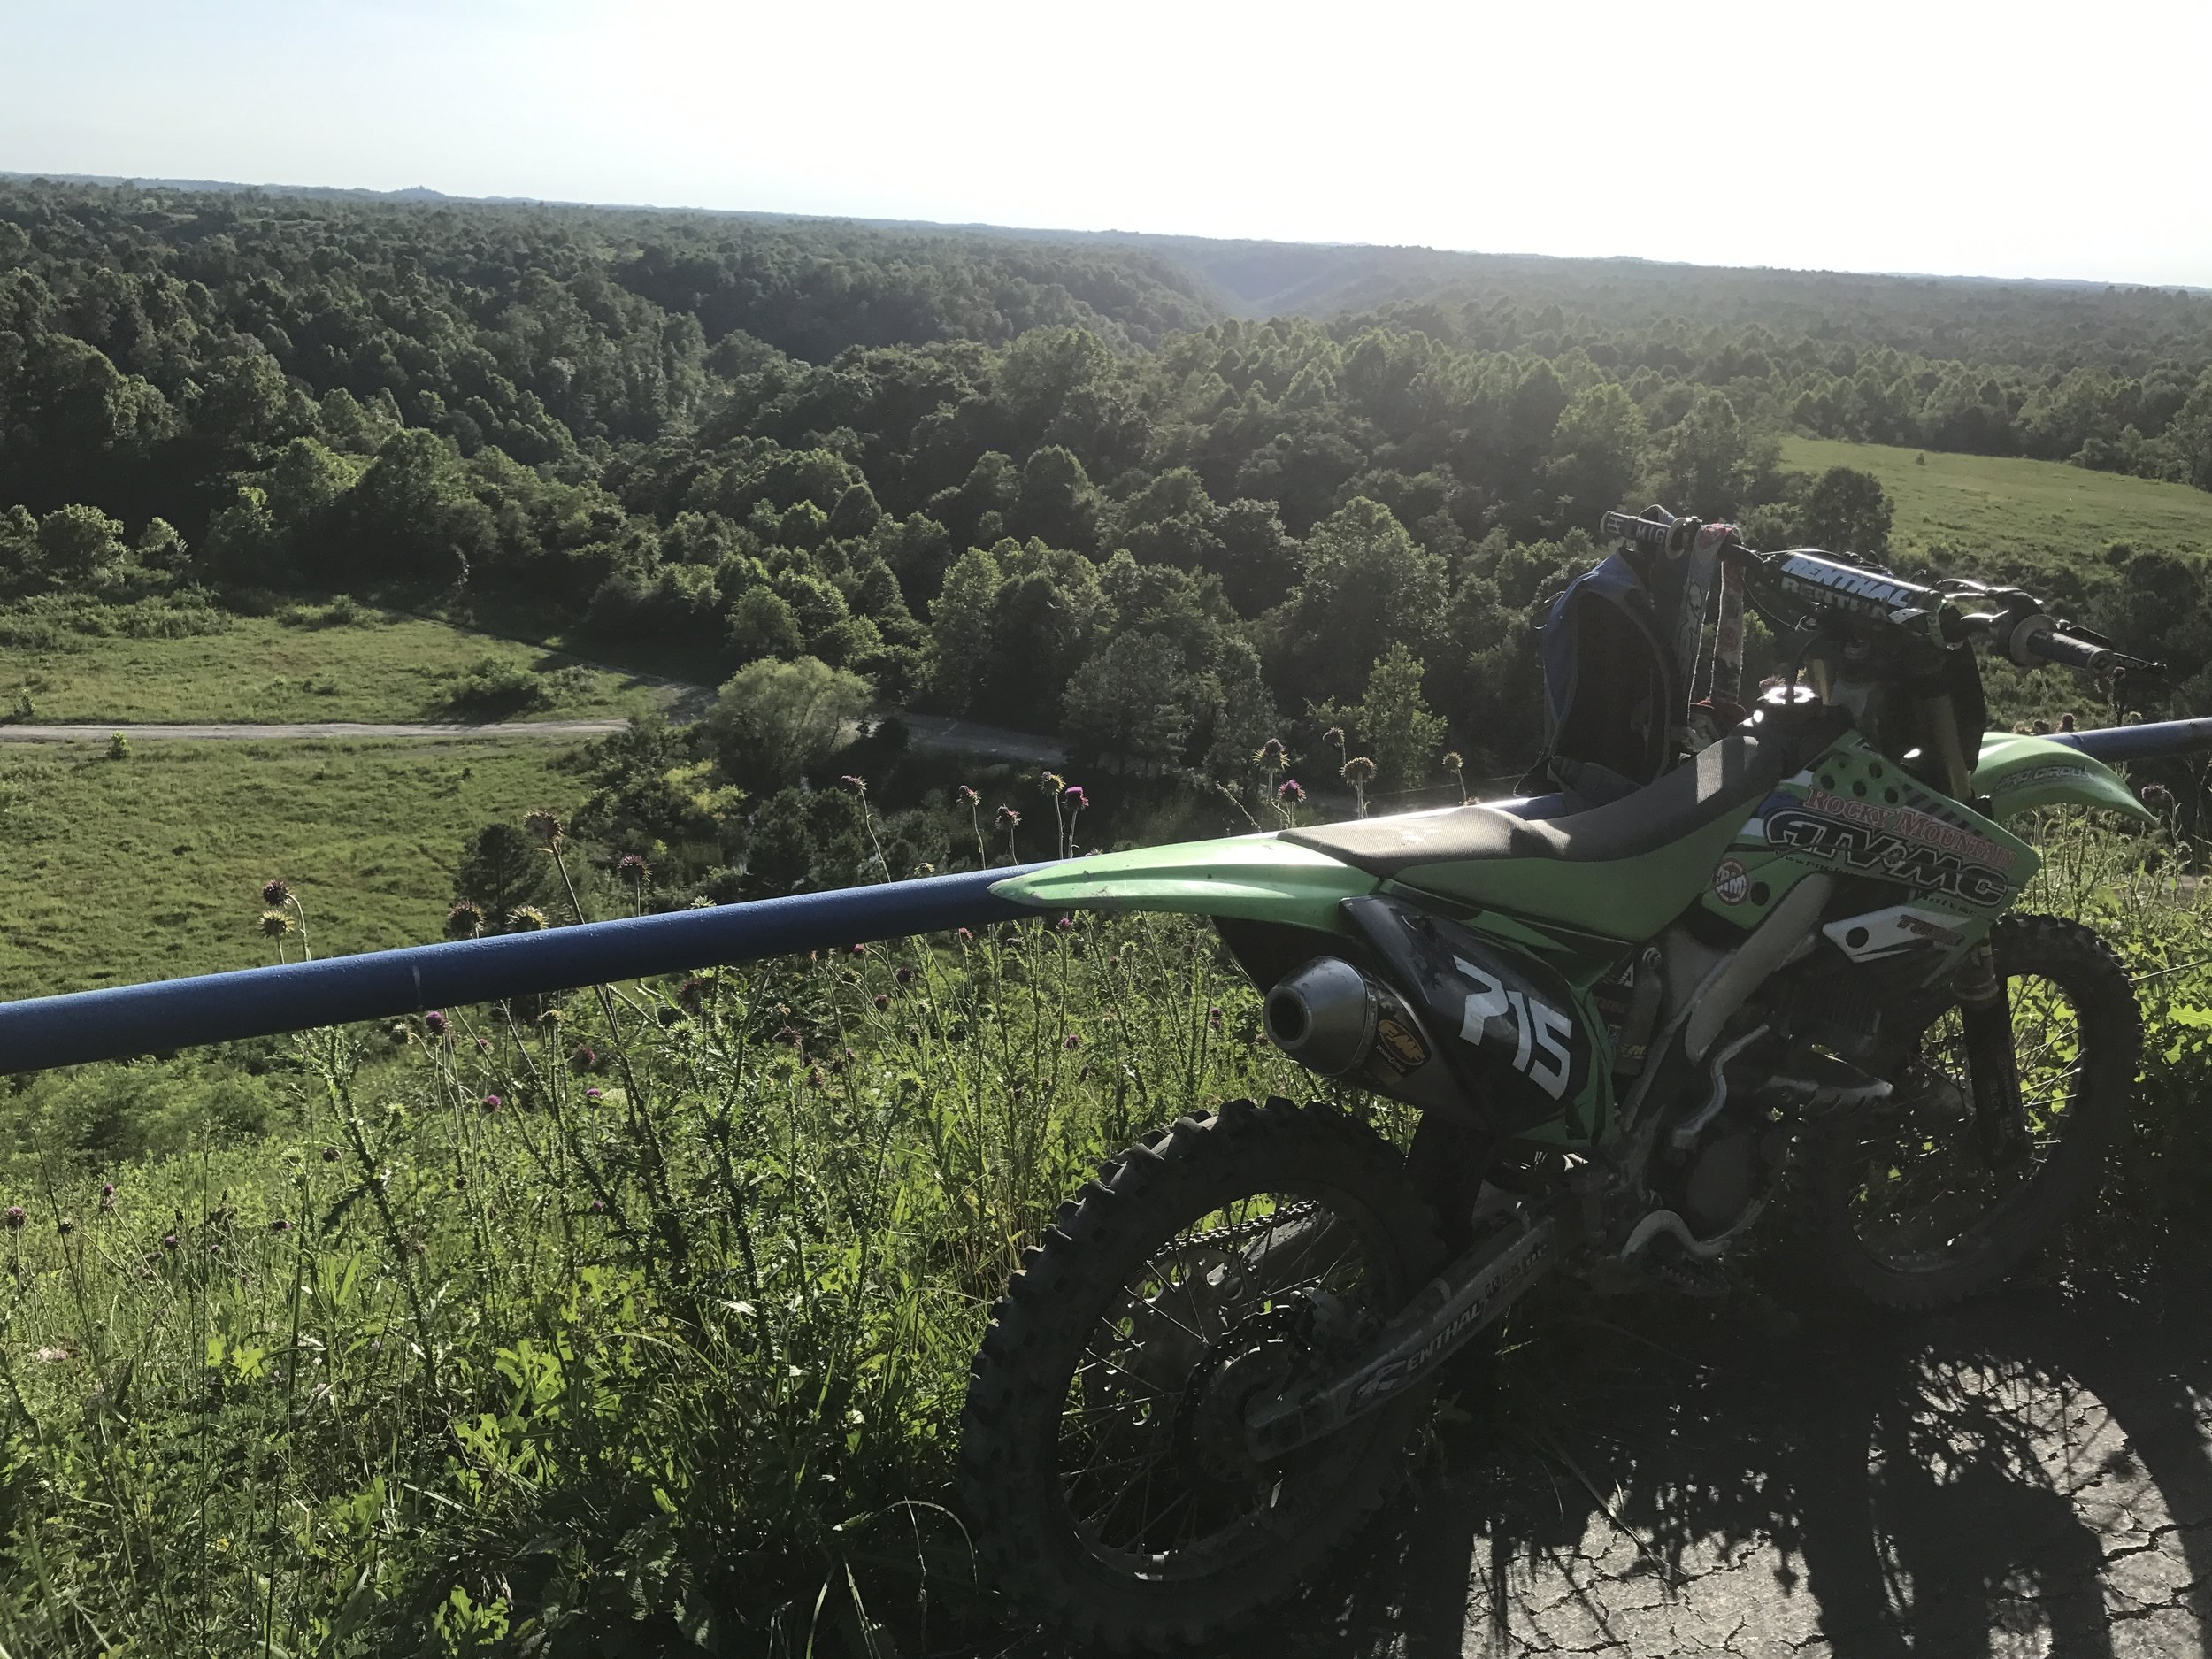 Moto: Southfork Elk View Station - Breathitt County KY   OHV trails in Breathitt County, KY.